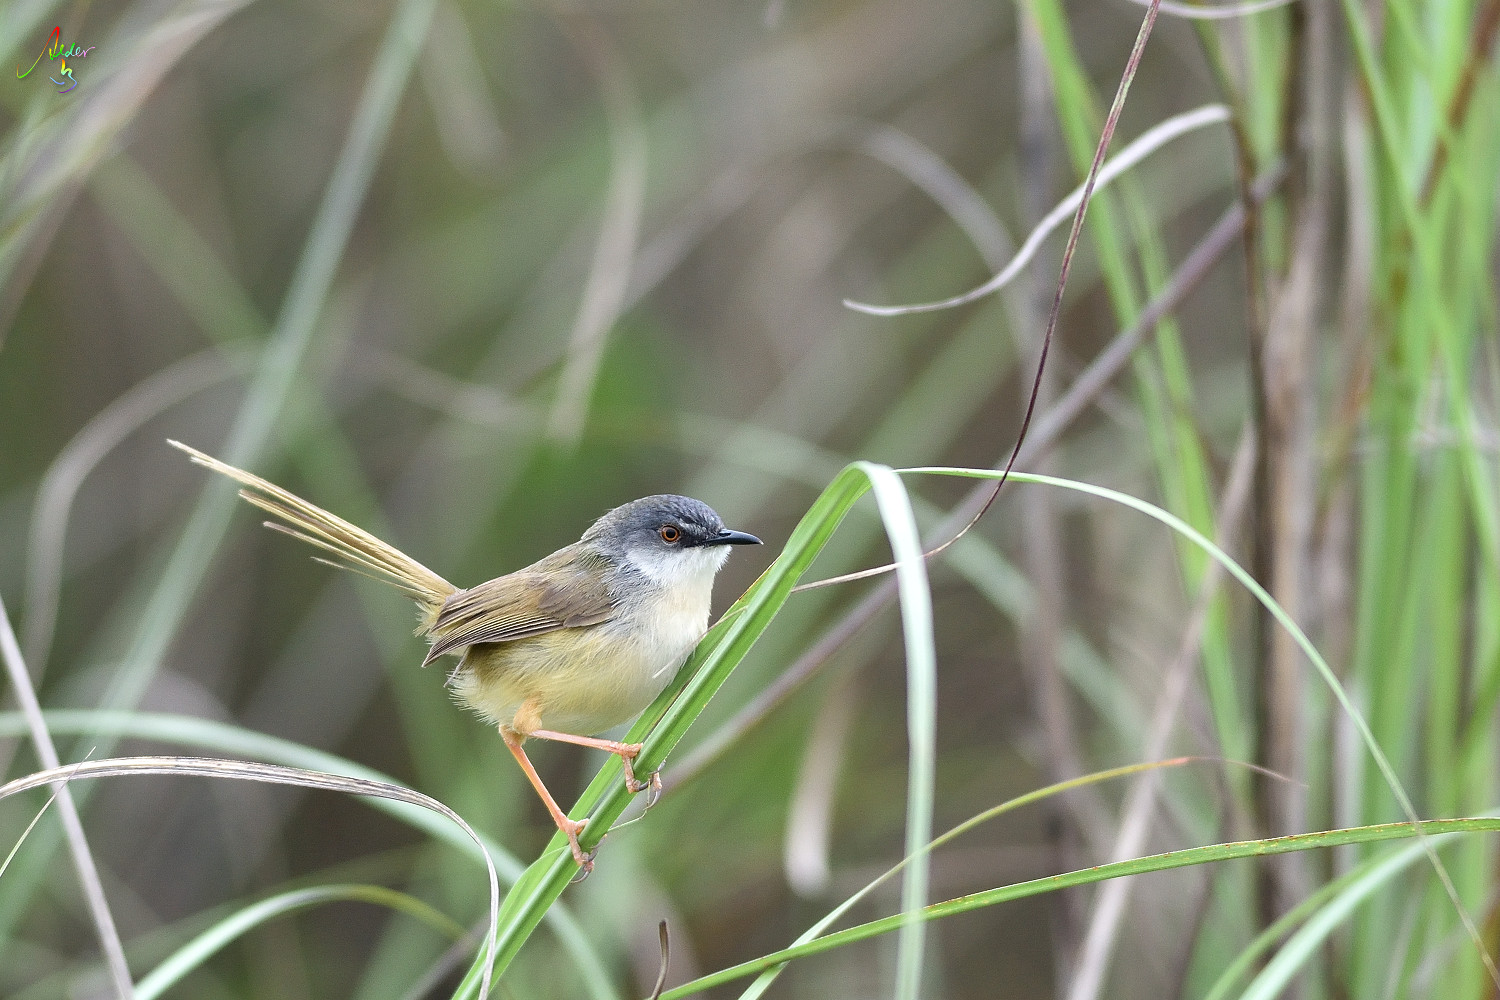 Yellow-bellied_Prinia_3633